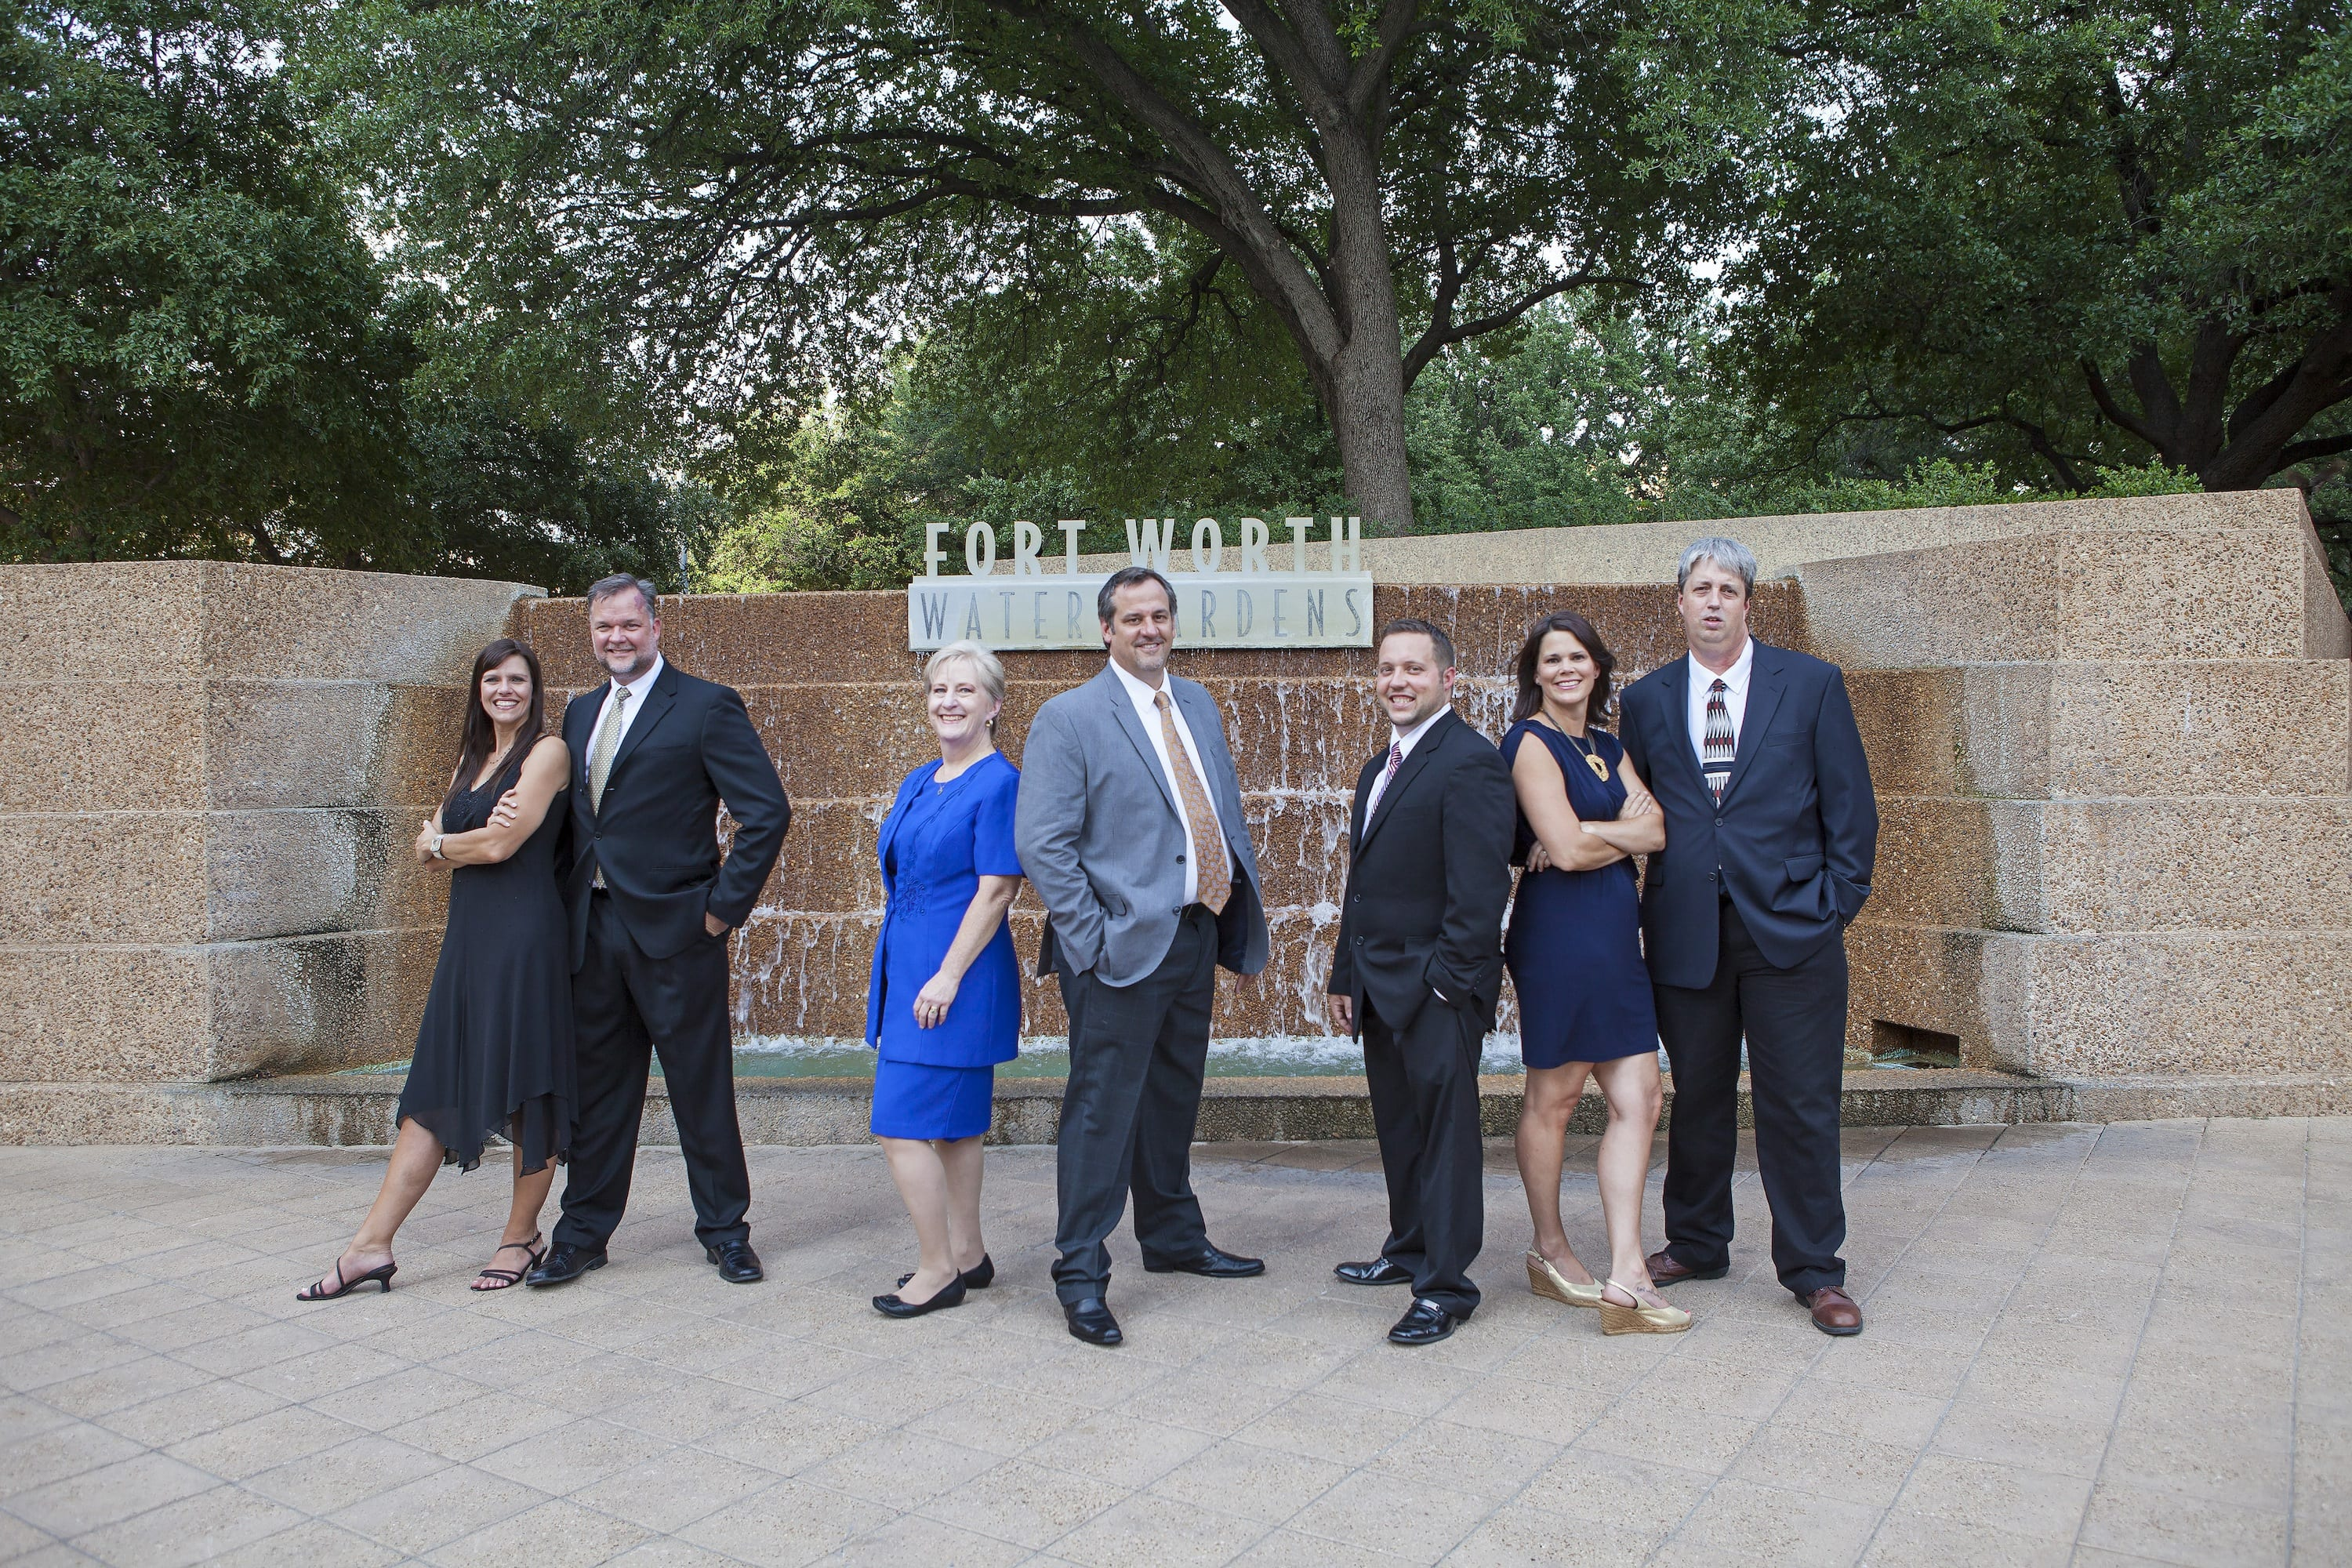 Fort Worth Texas Real Estate